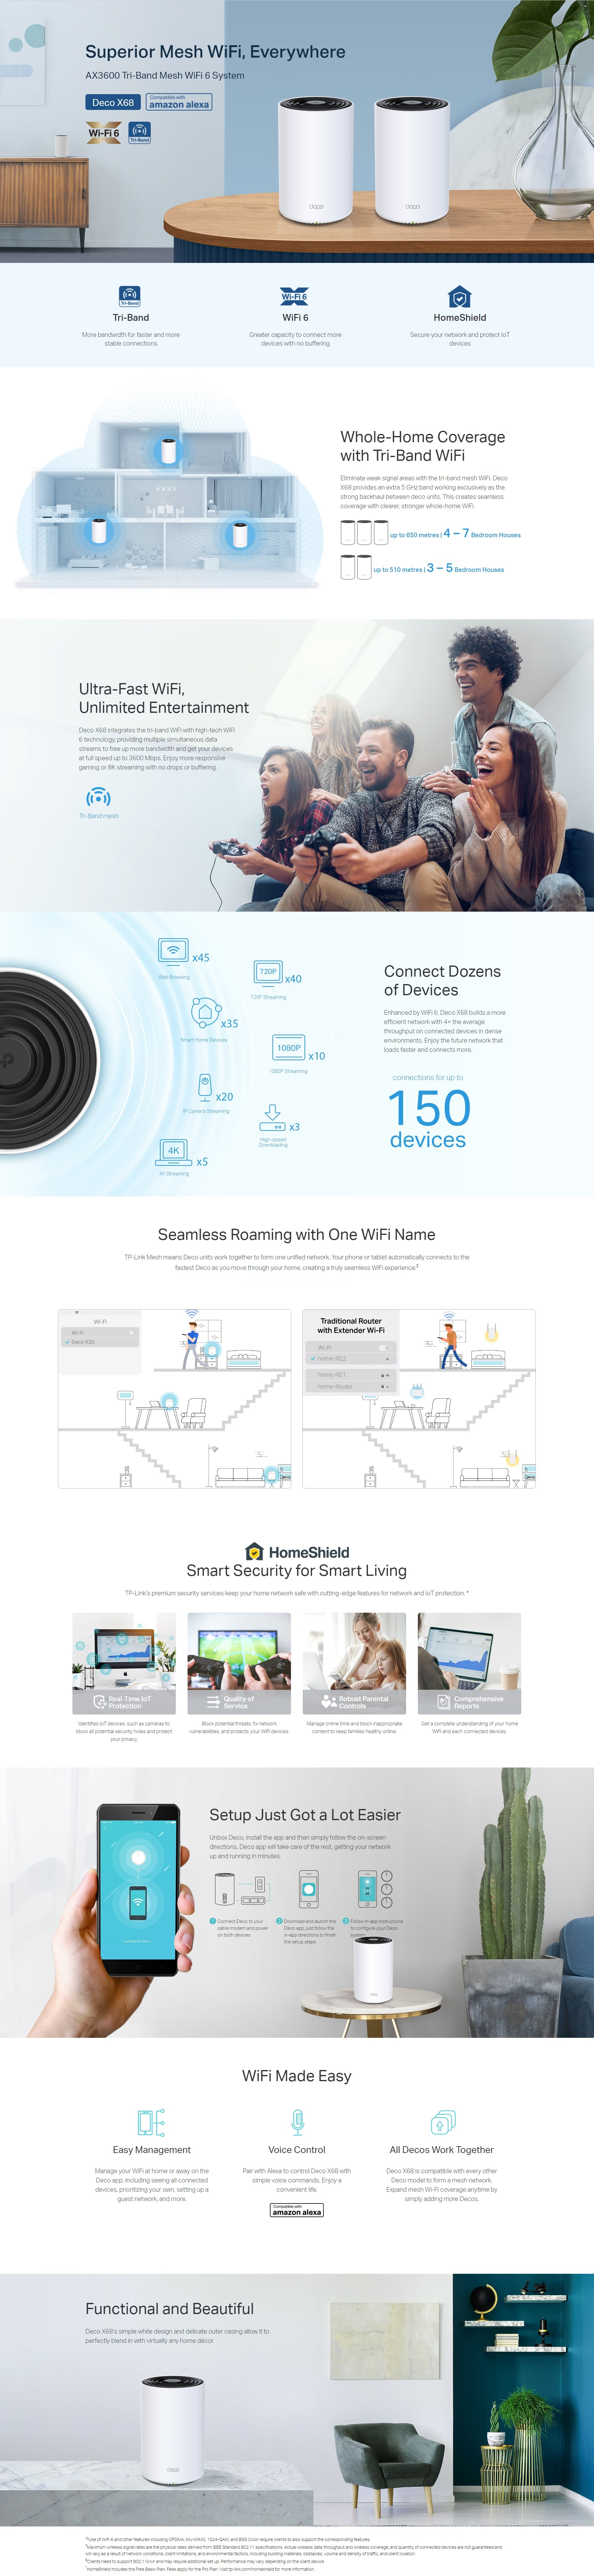 A large marketing image providing additional information about the product TP-LINK Deco X68 Wireless-AX3600 WiFi 6 Mesh Router - 2 Pack - Additional alt info not provided